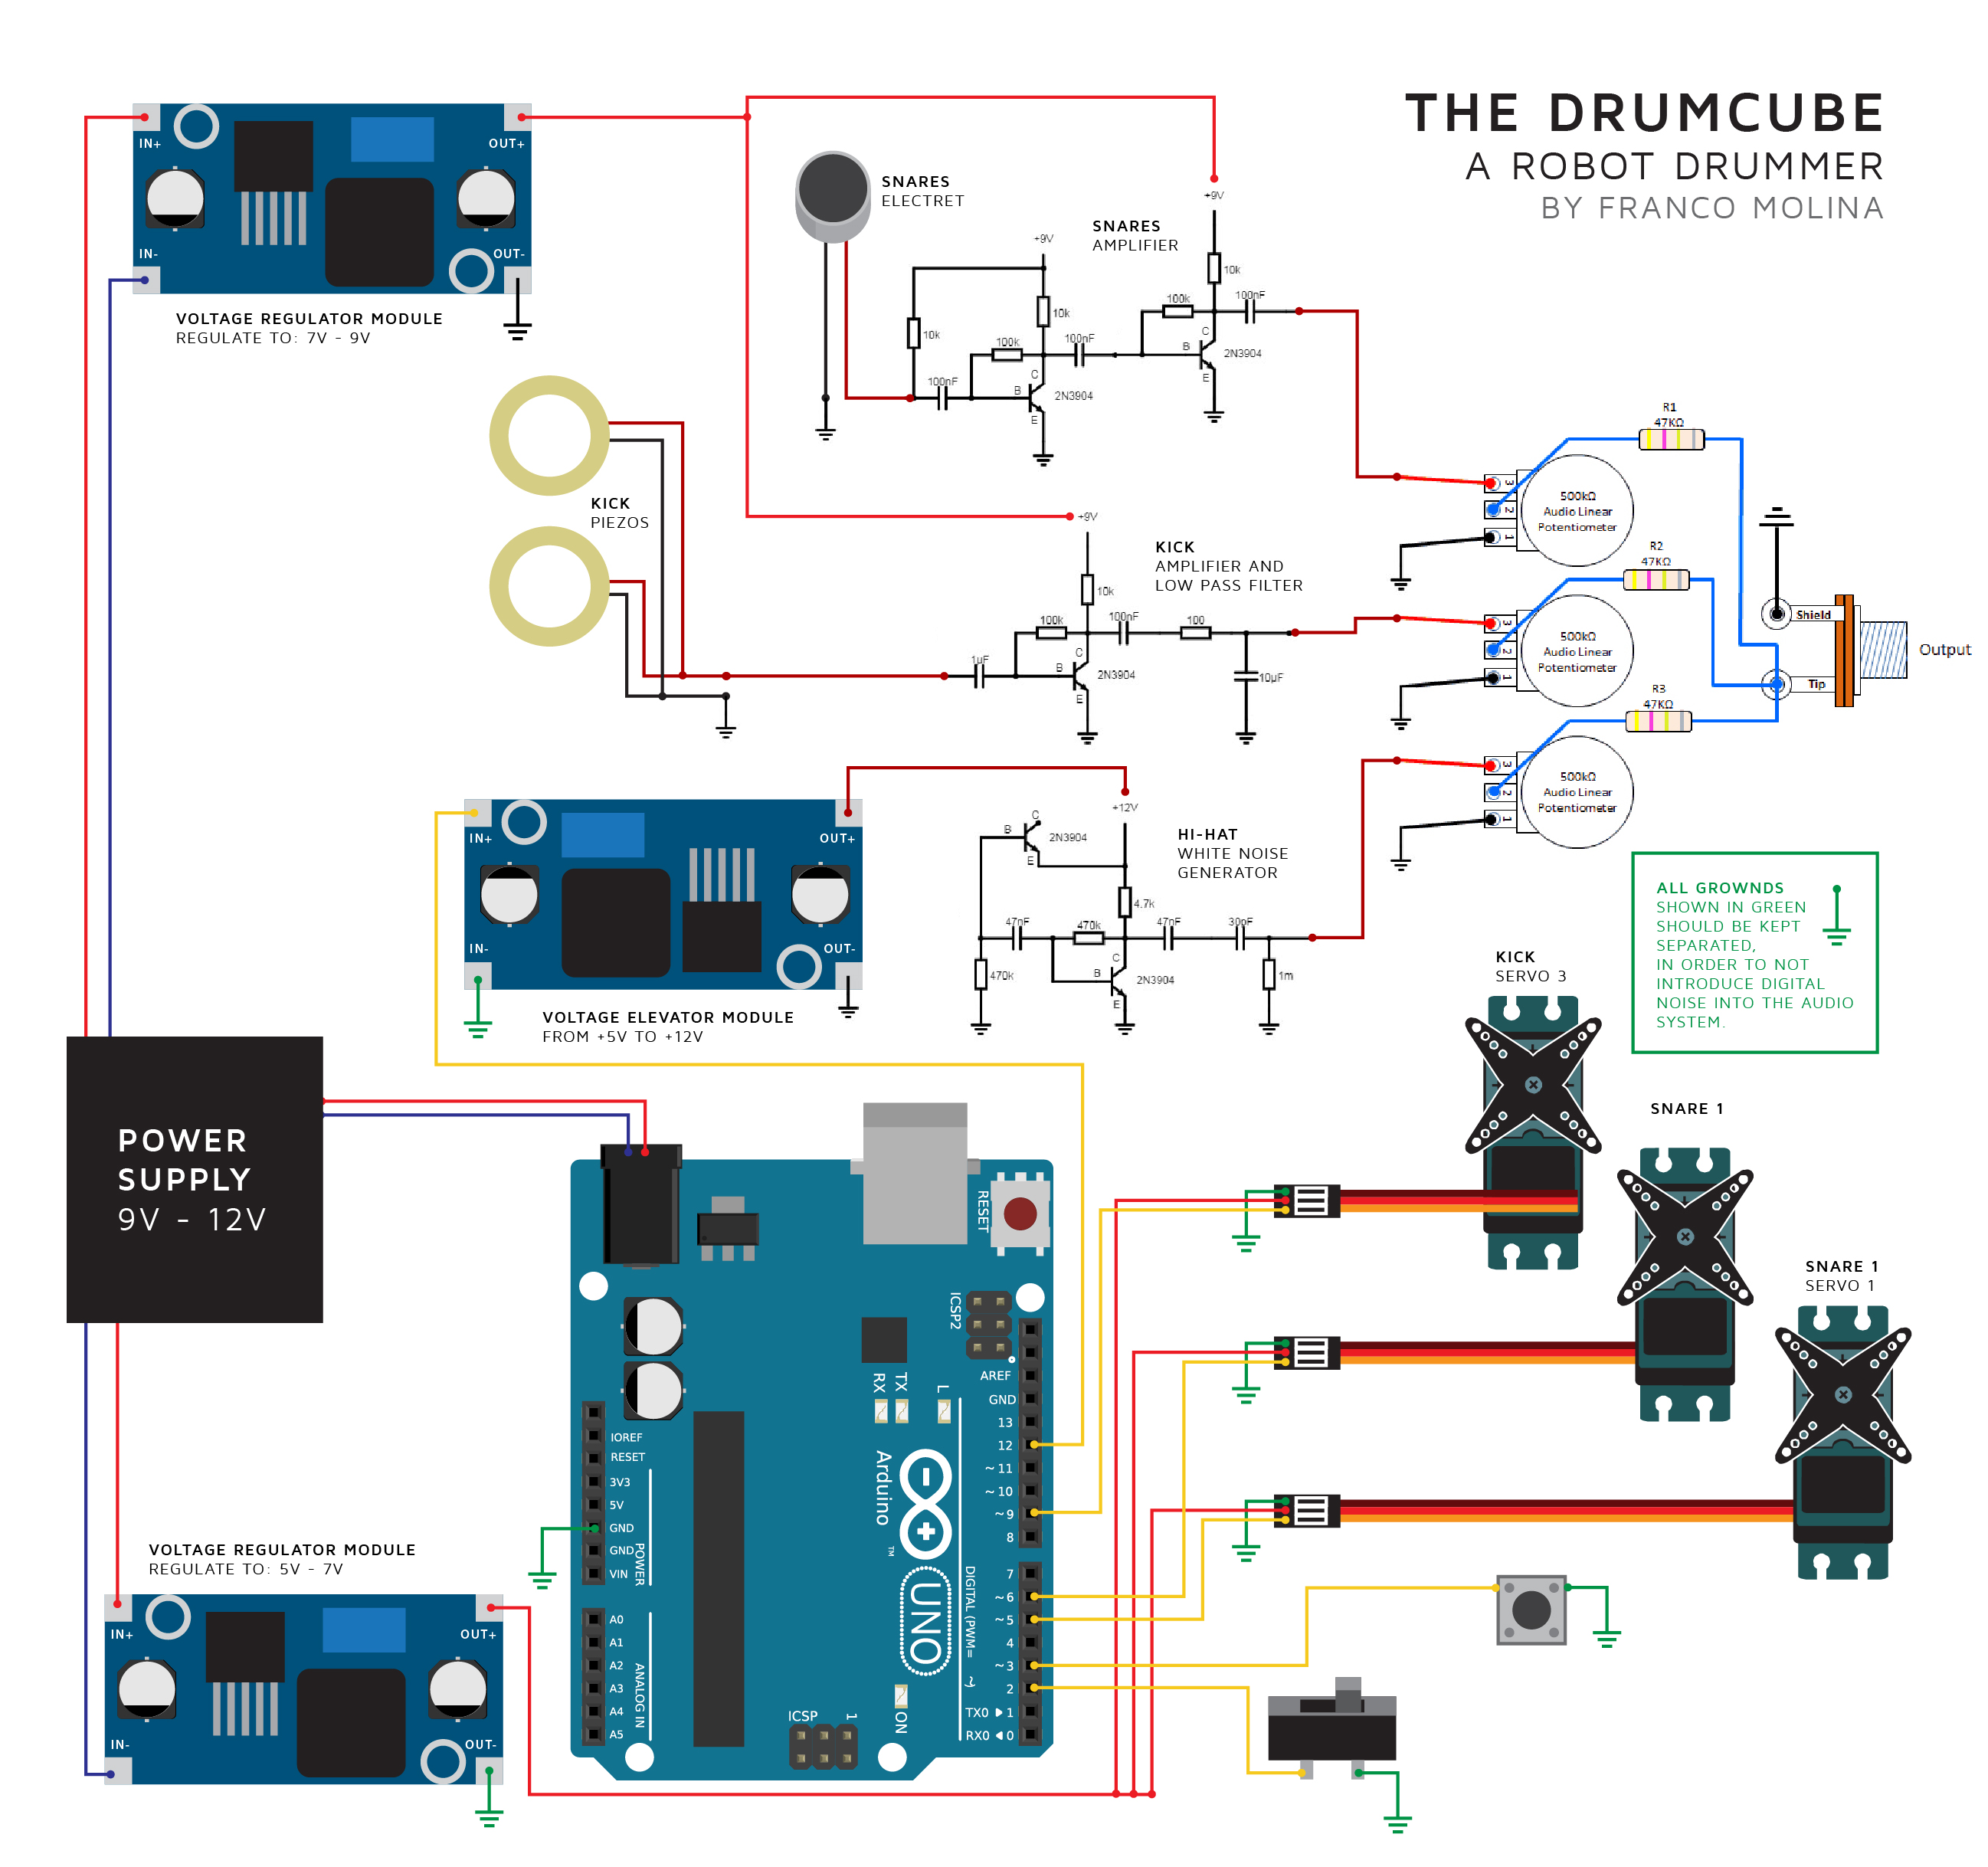 power the electret mic through arduino uno as shown in circuit diagram wiring diagram blog [ 2595 x 2437 Pixel ]